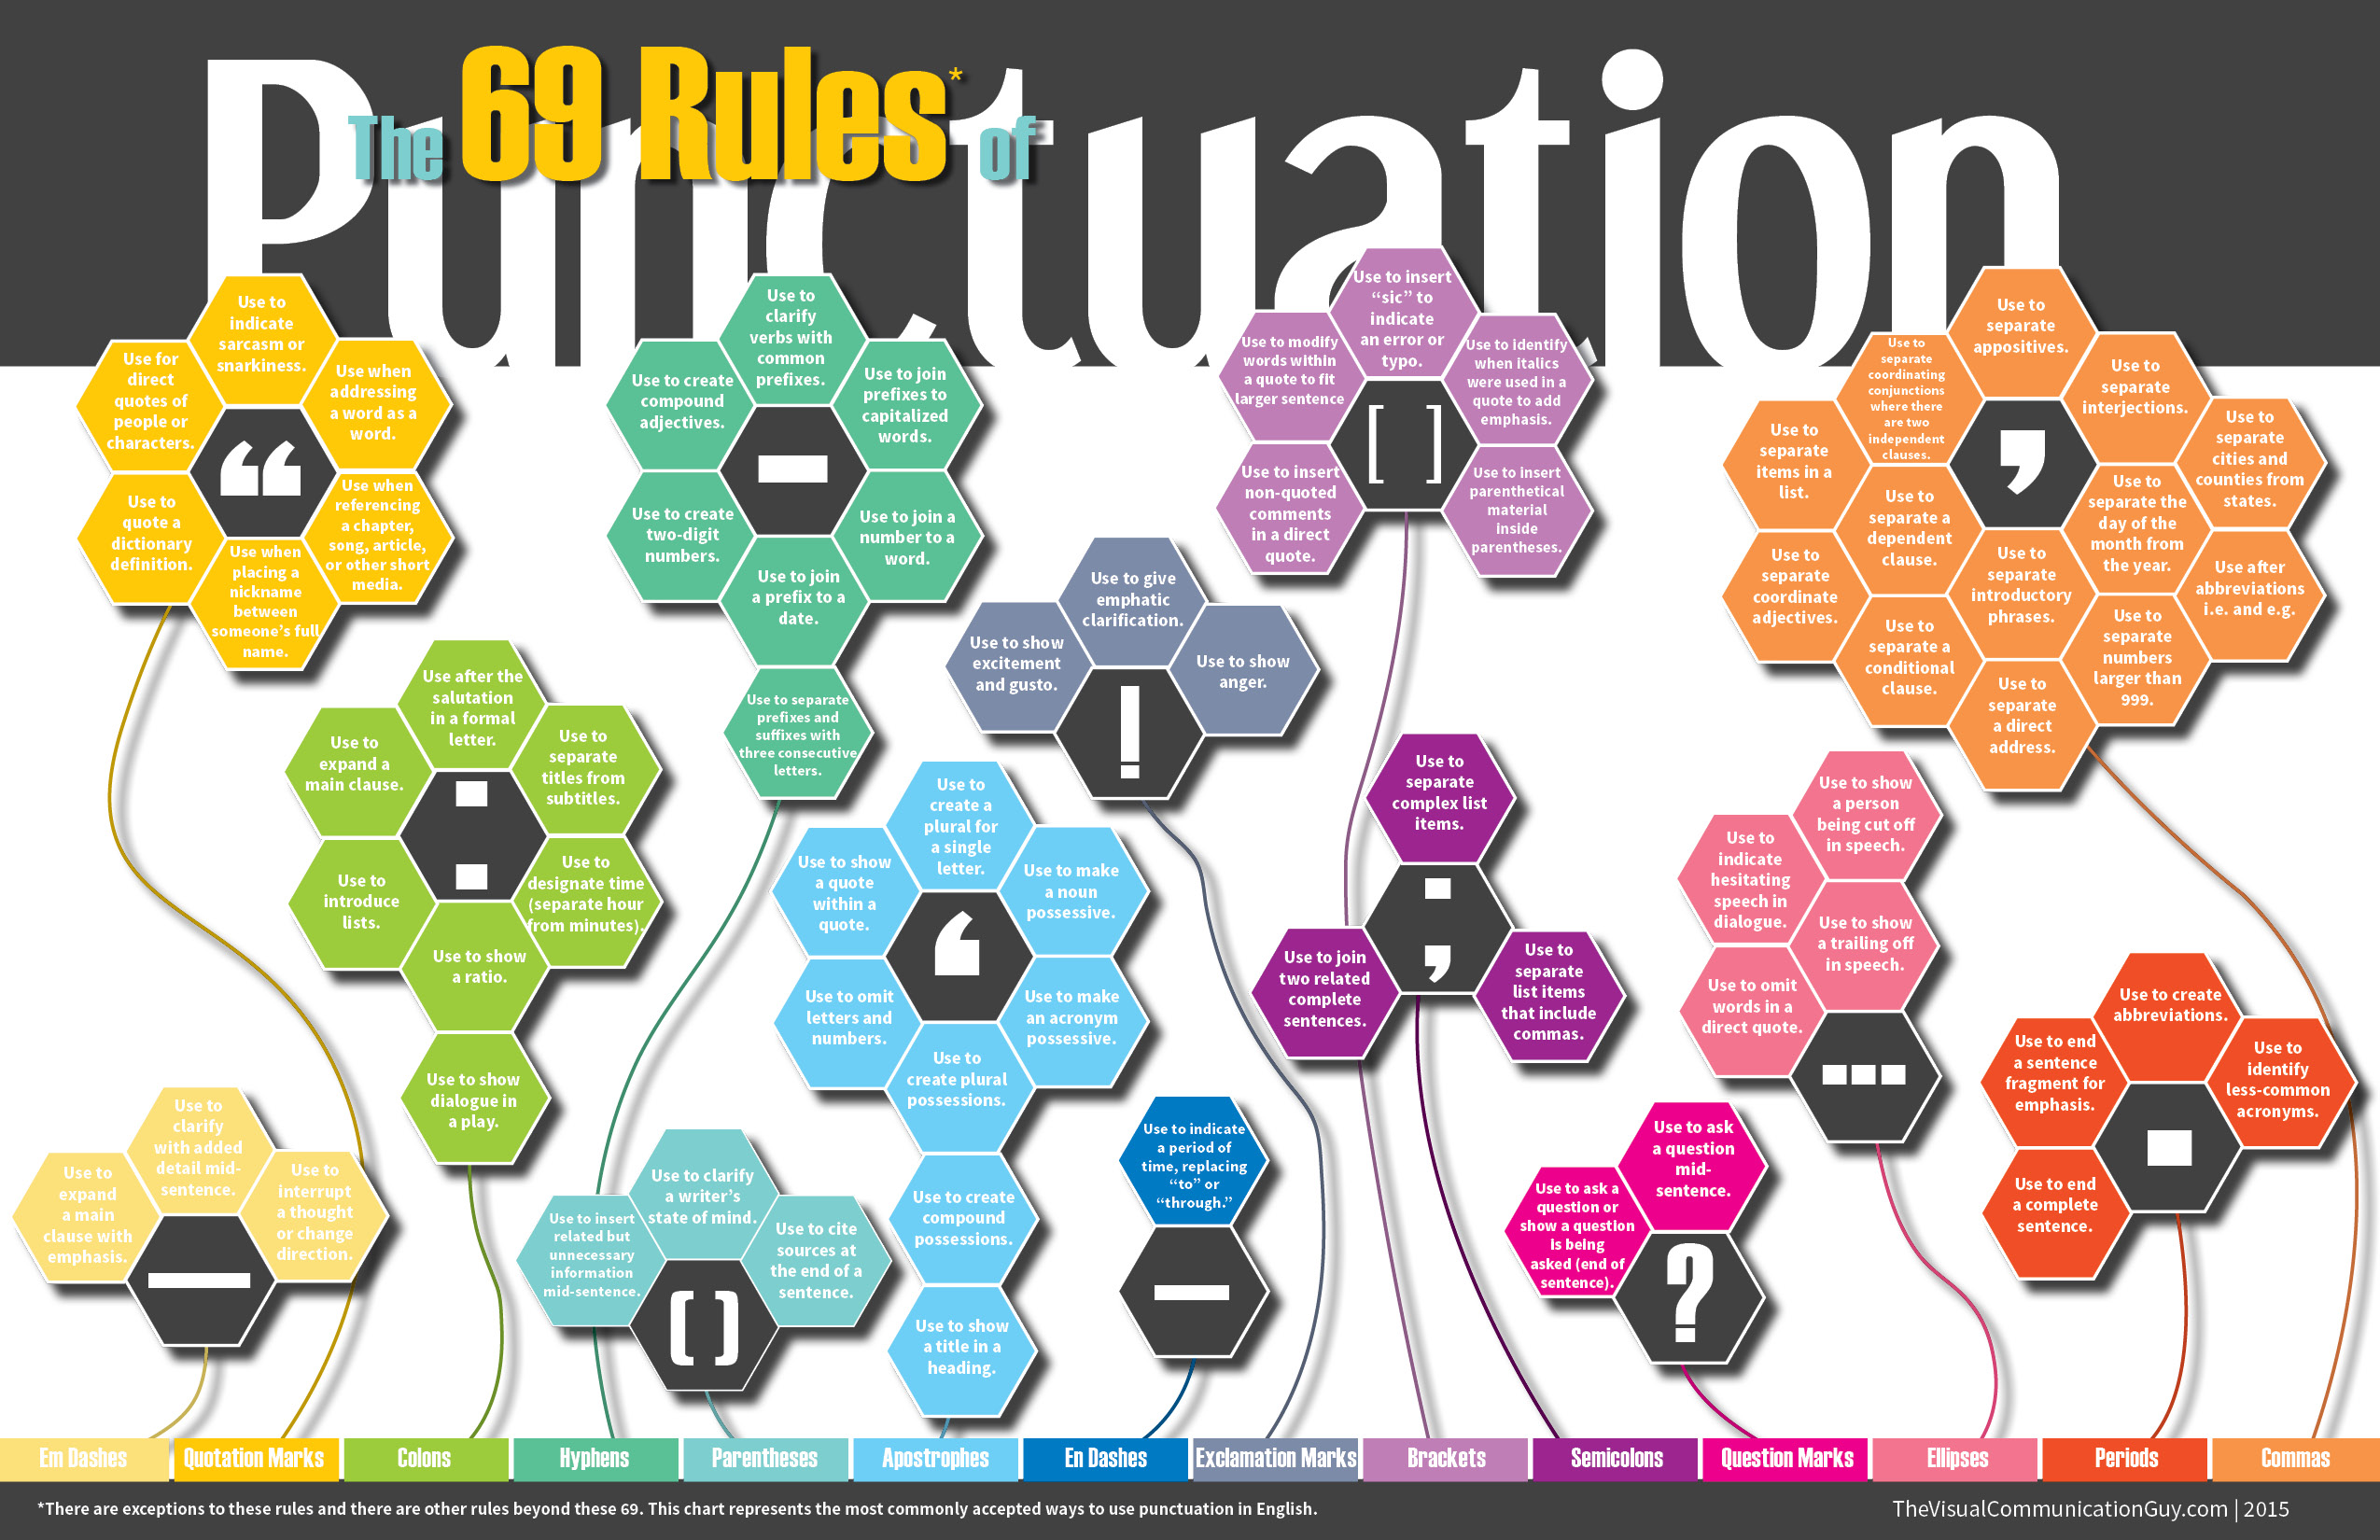 the 69 rules of punctuation  u2013 the visual communication guy